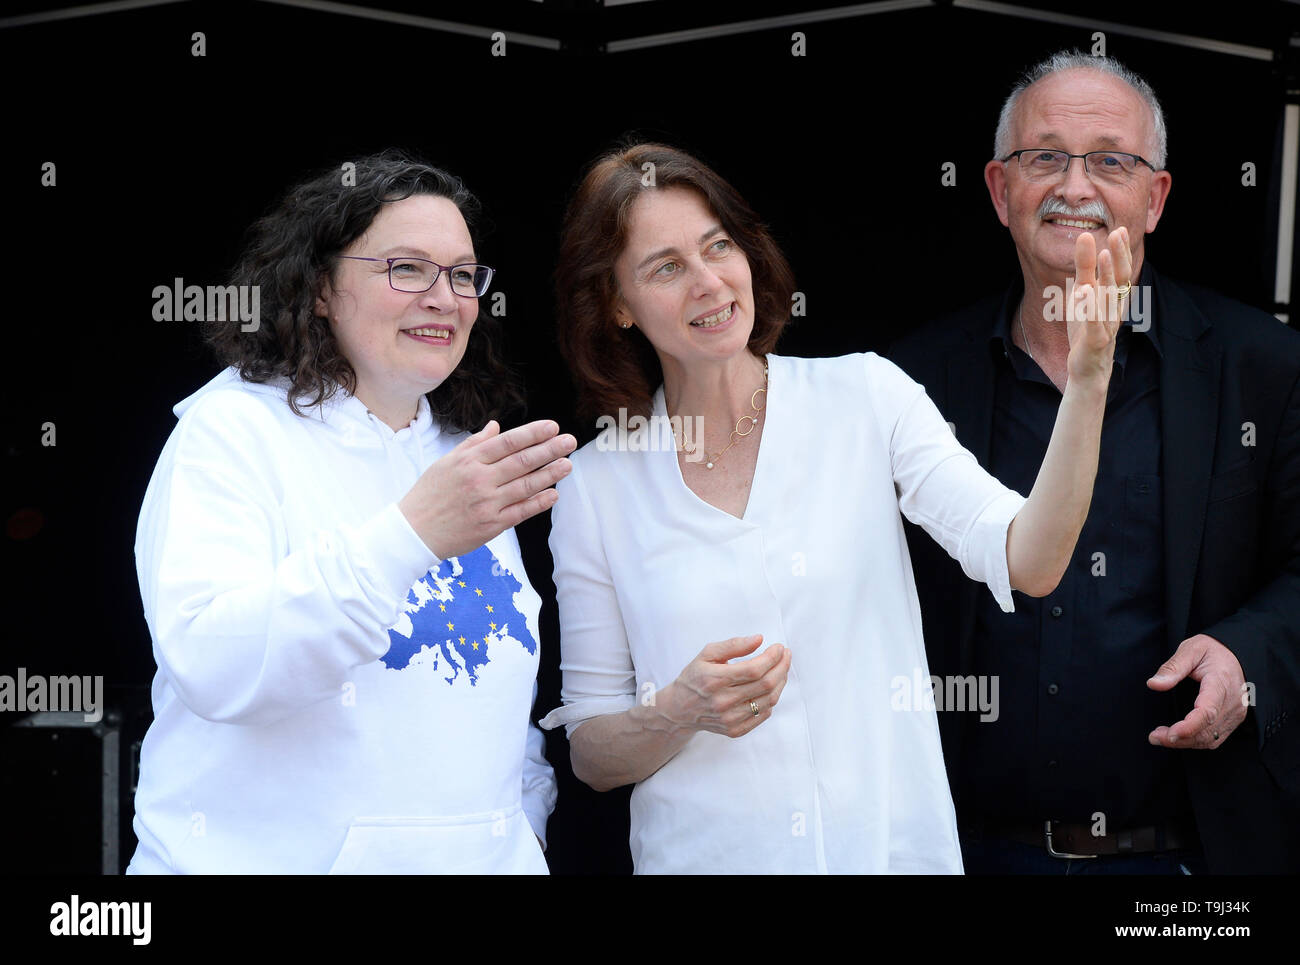 Cologne, Germany. 19th May, 2019. SPD leader Andrea Nahles (l-r) talks to the SPD's top candidate for the European elections, Katarina Barley, at a demonstration for Europe. Right SPD European politician Udo Bullmann. Before the European elections on 26 May, the nationwide demos are to send a signal against the international shift to the right and for a Europe of human rights, democracy, social justice and climate protection. Credit: Roberto Pfeil/dpa/Alamy Live News - Stock Image